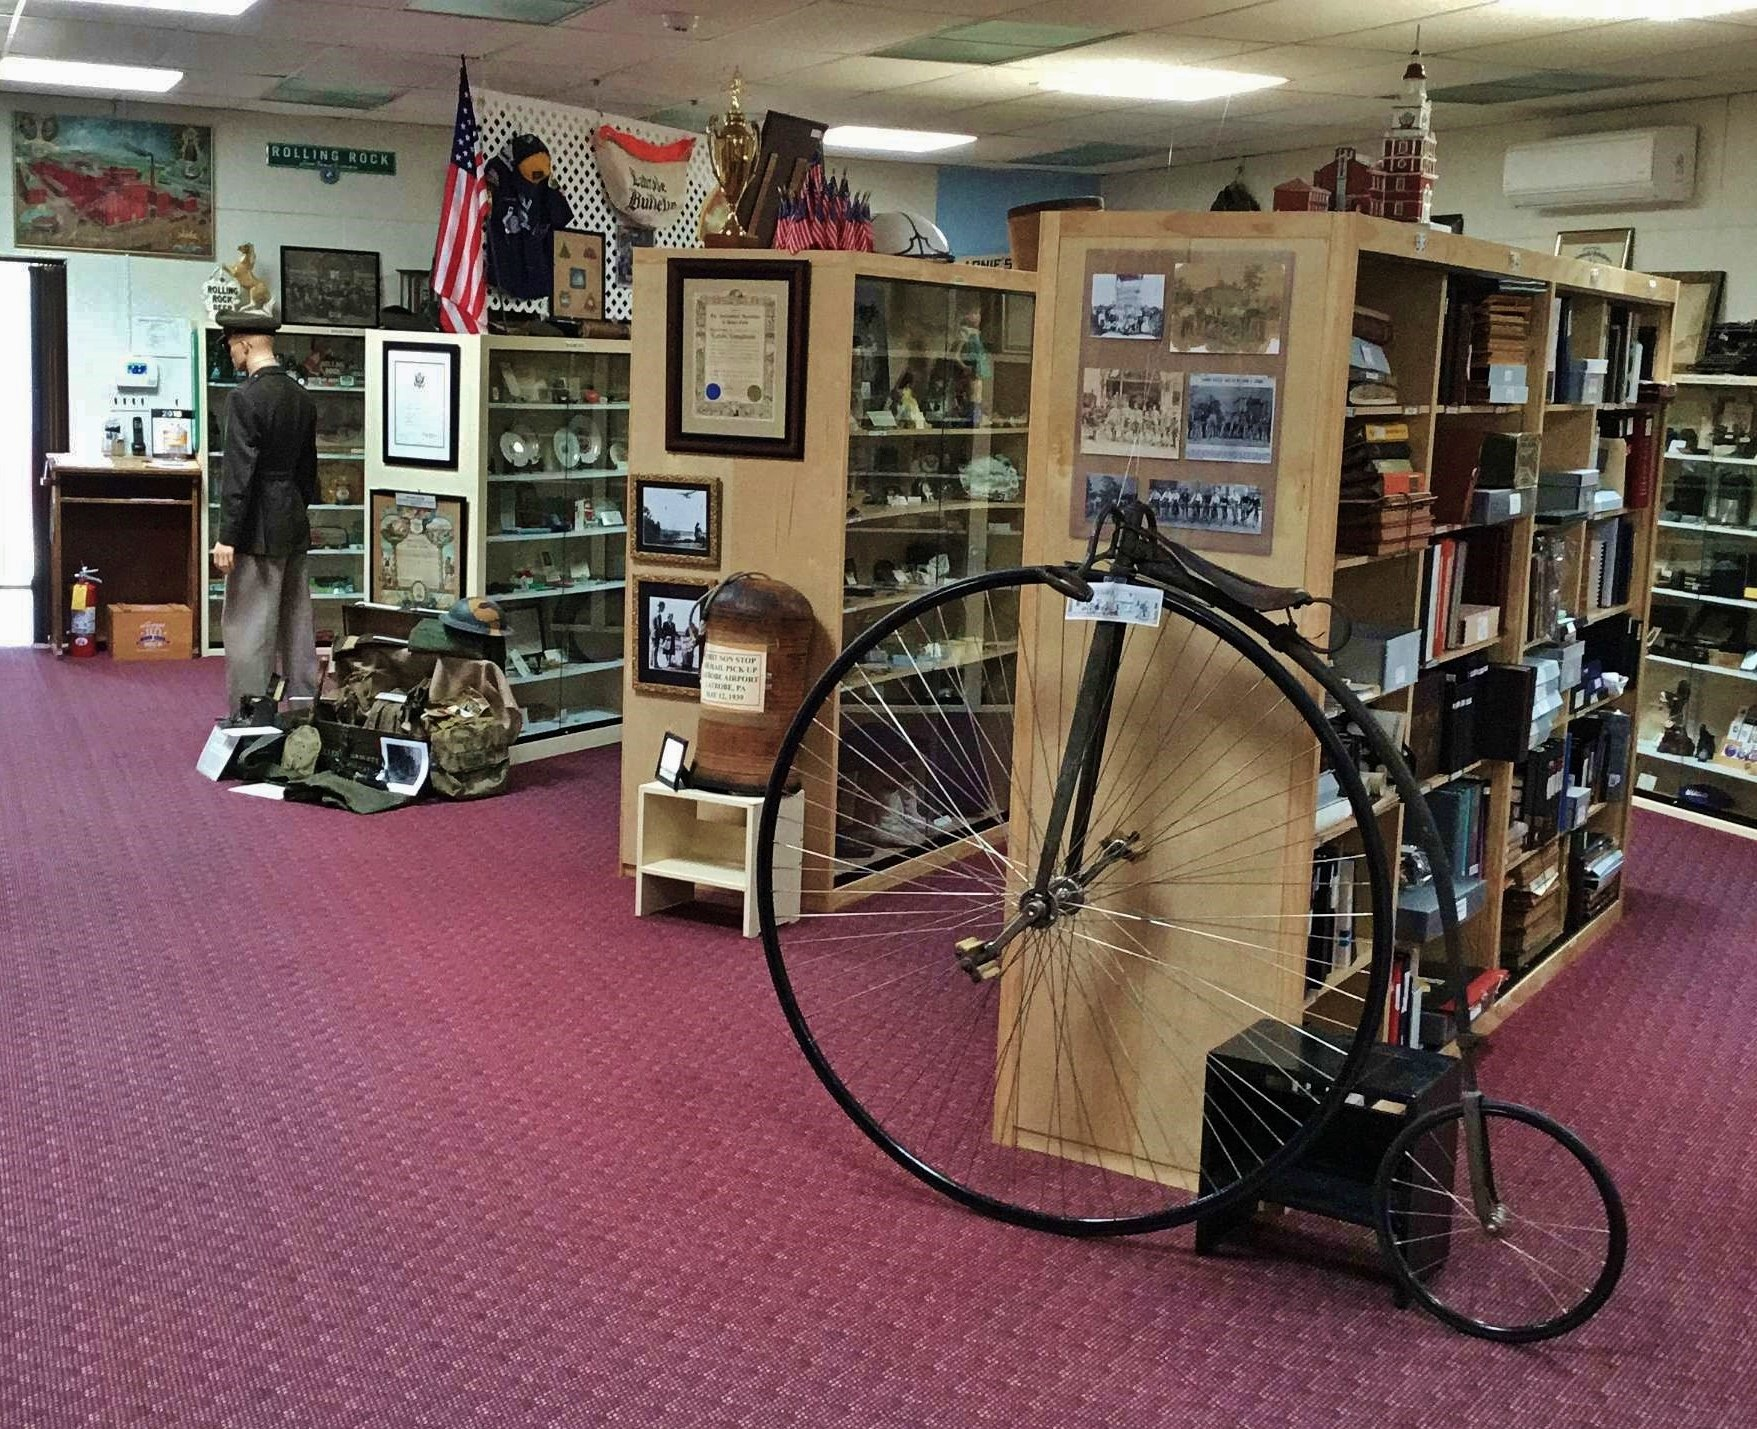 Latrobe Area Historical Society museum display room